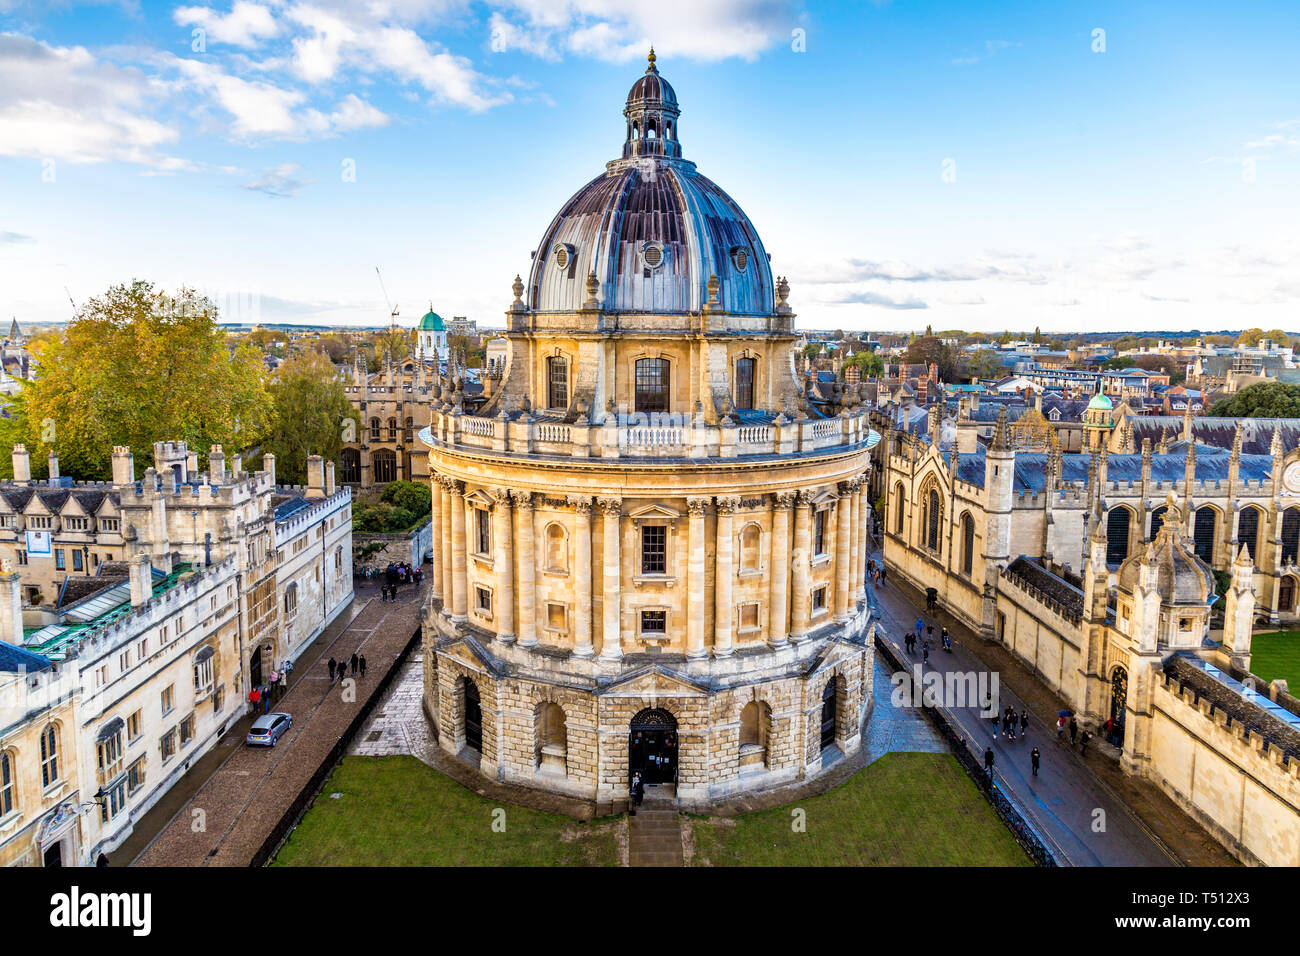 The Radcliffe Camera building facade, part of the Oxford University, in Oxford, UK Stock Photo